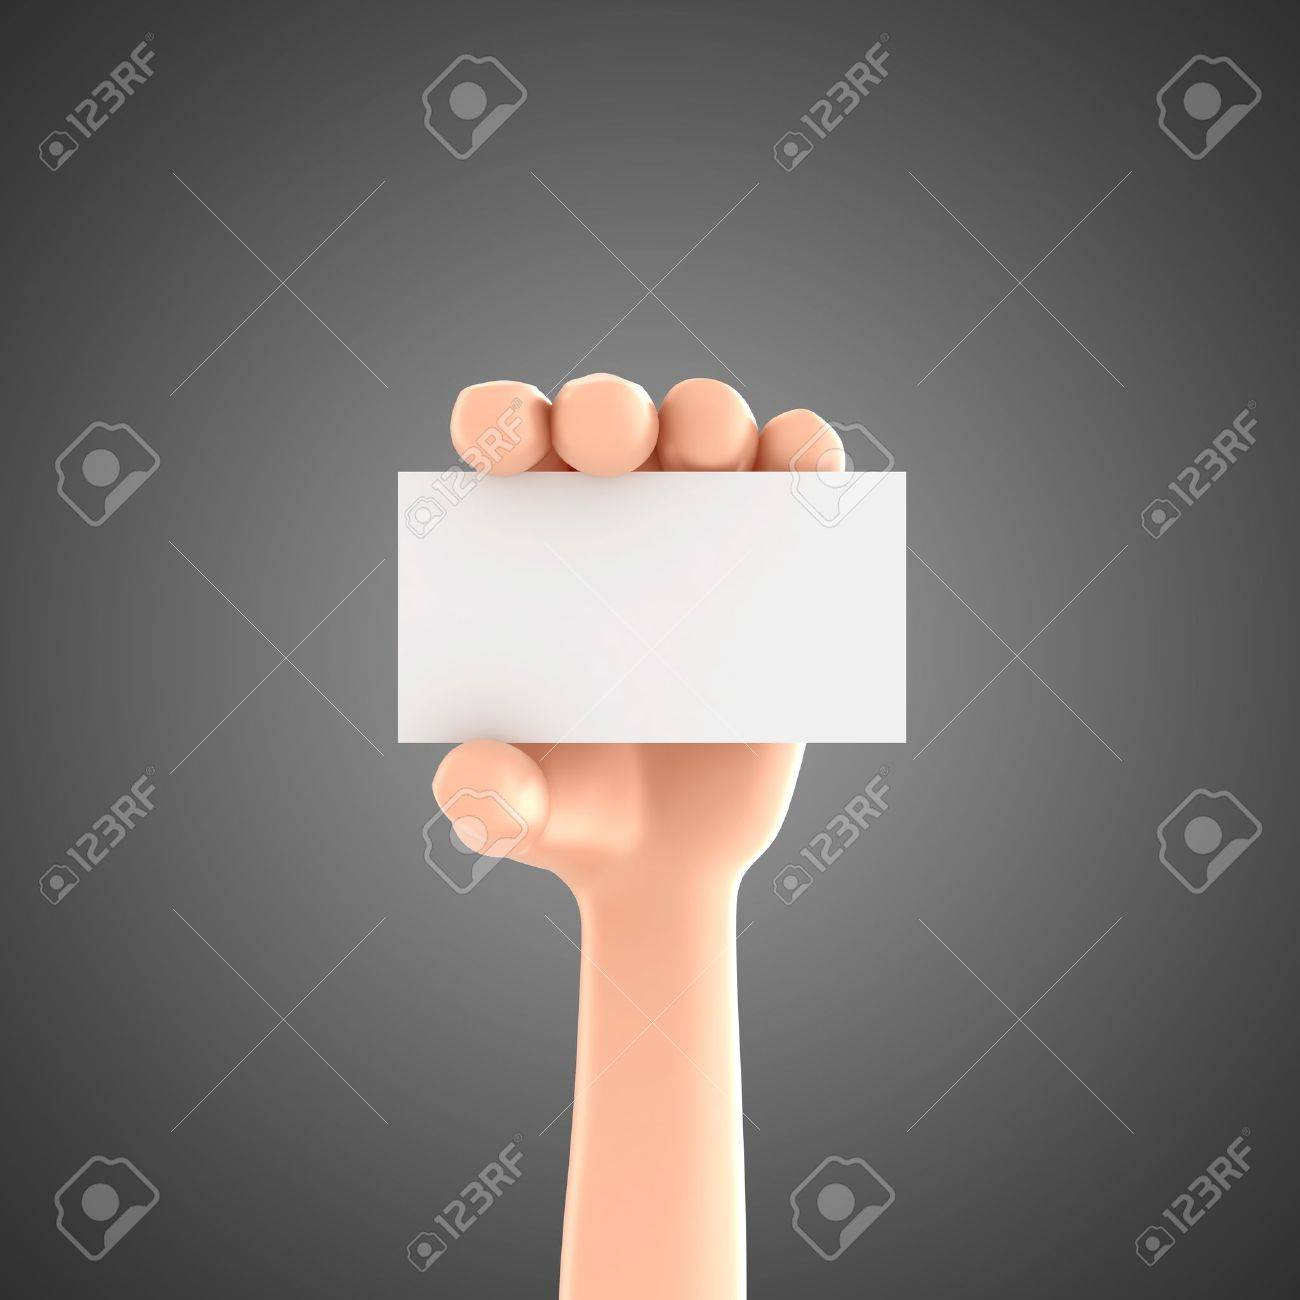 3d Render Of A Hand Holding Business Card Stock Photo, Picture And ...